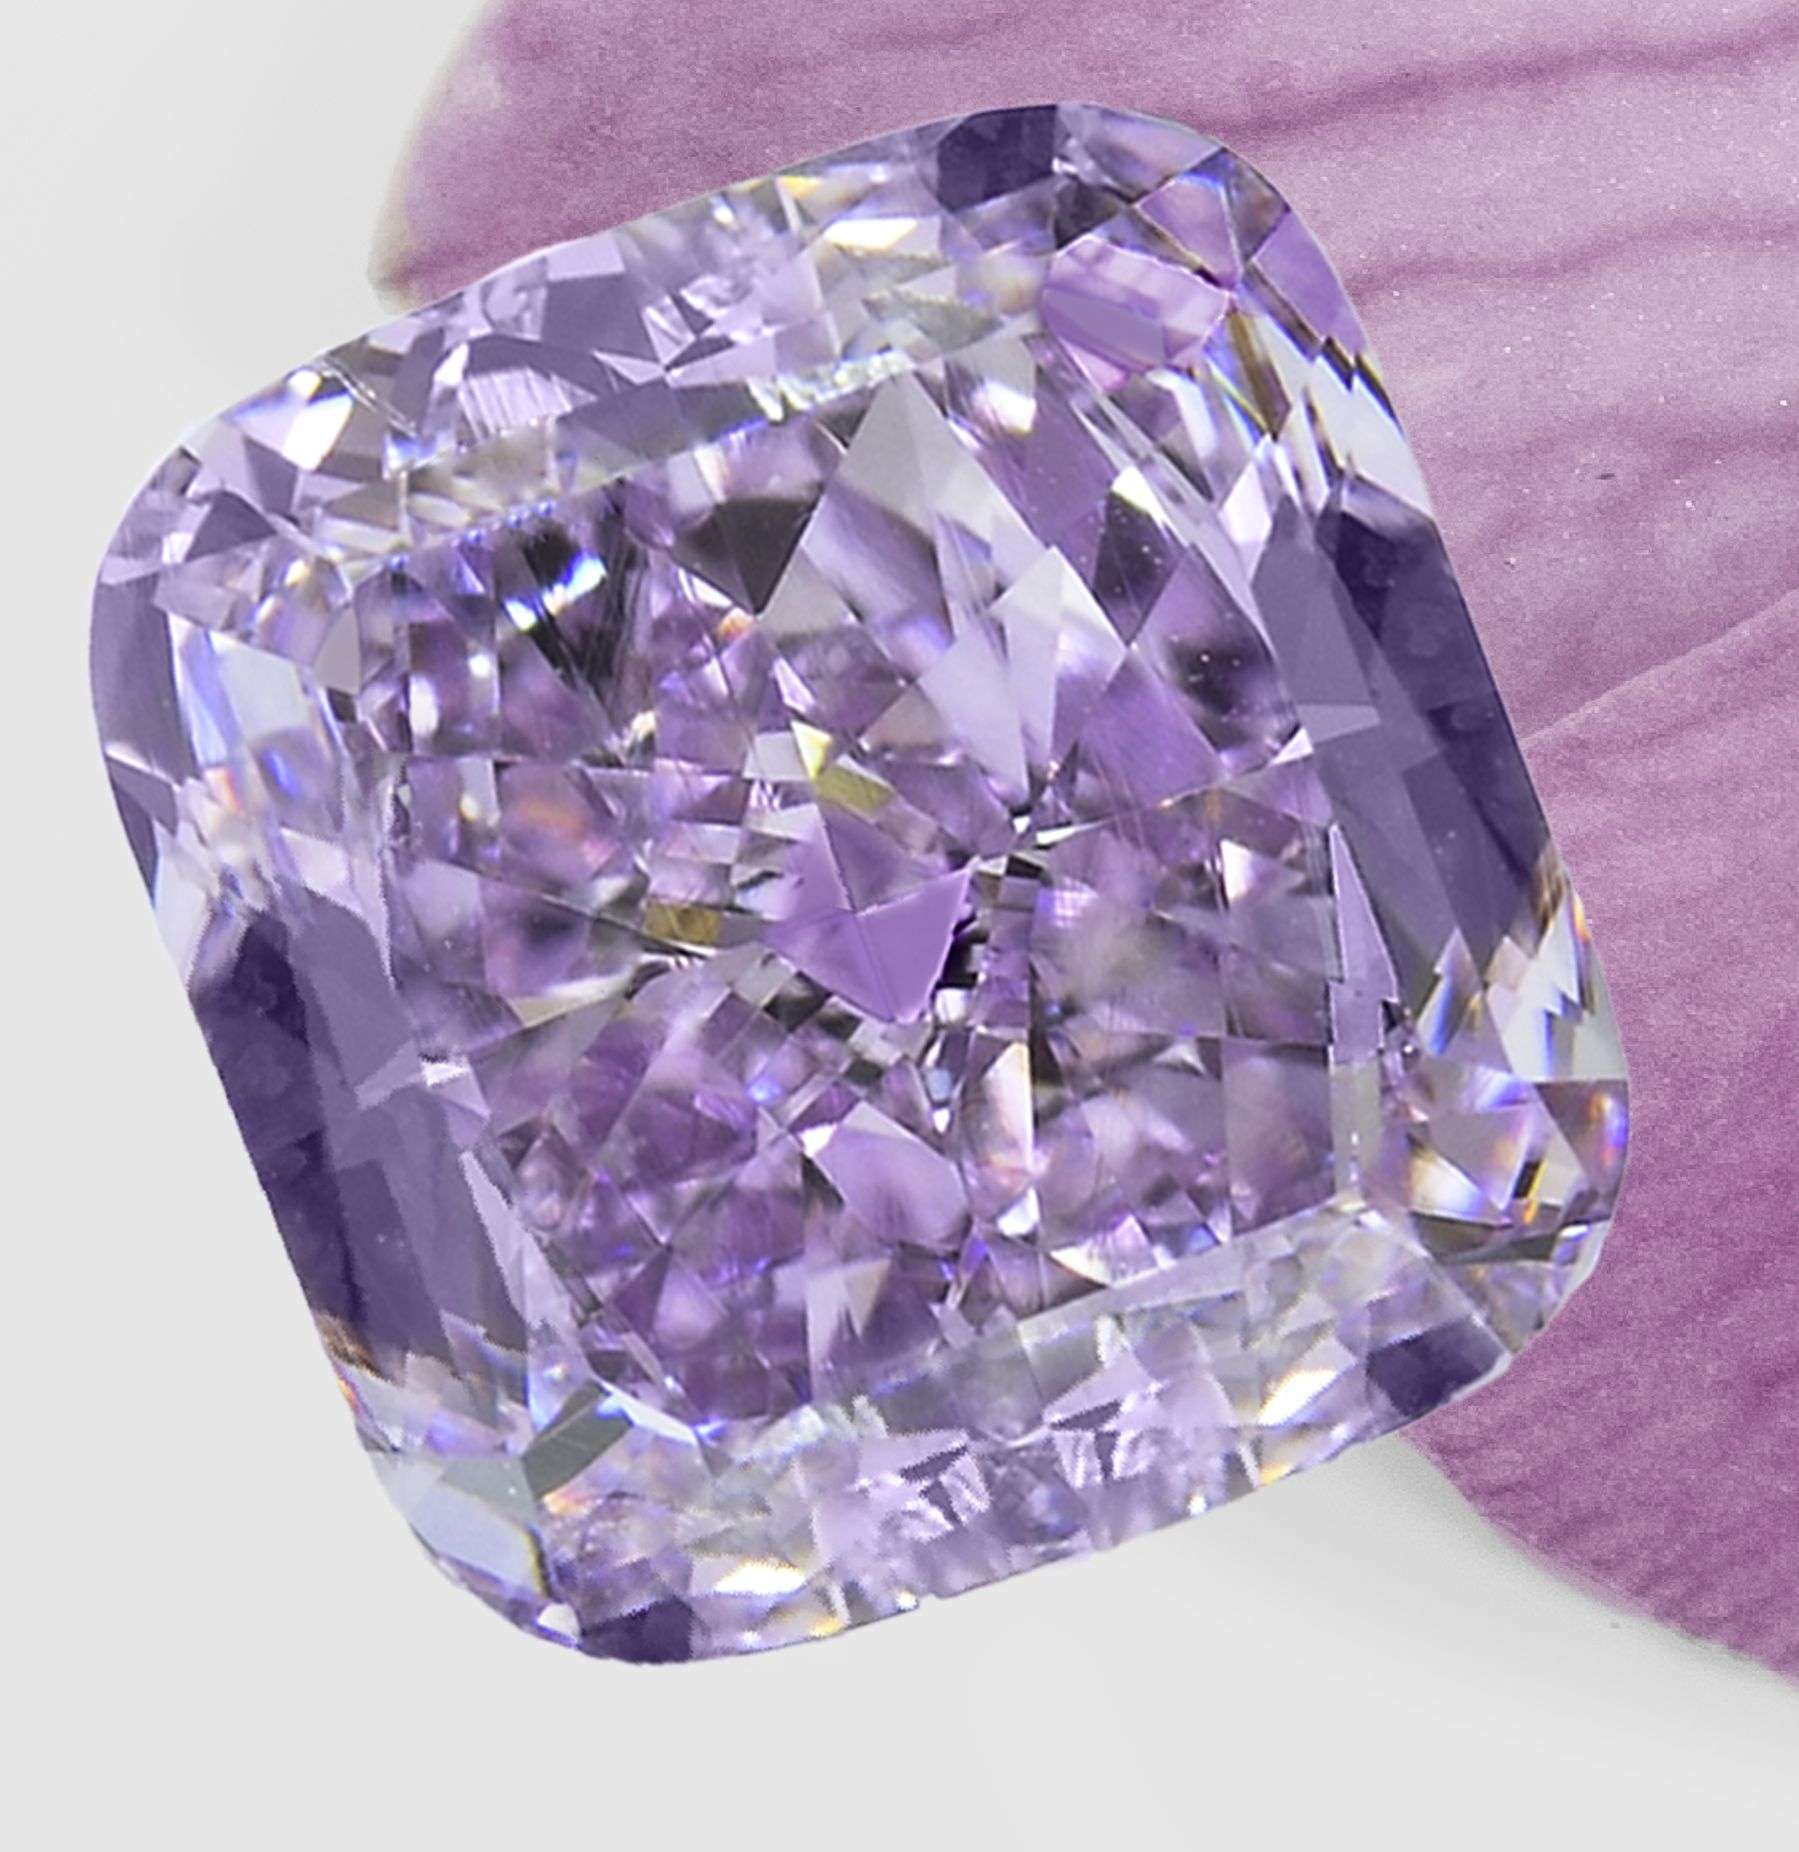 purple diamonds l is cush fvpr victorian j gem the extremely rarest vivid one rare diamond an orchid of west